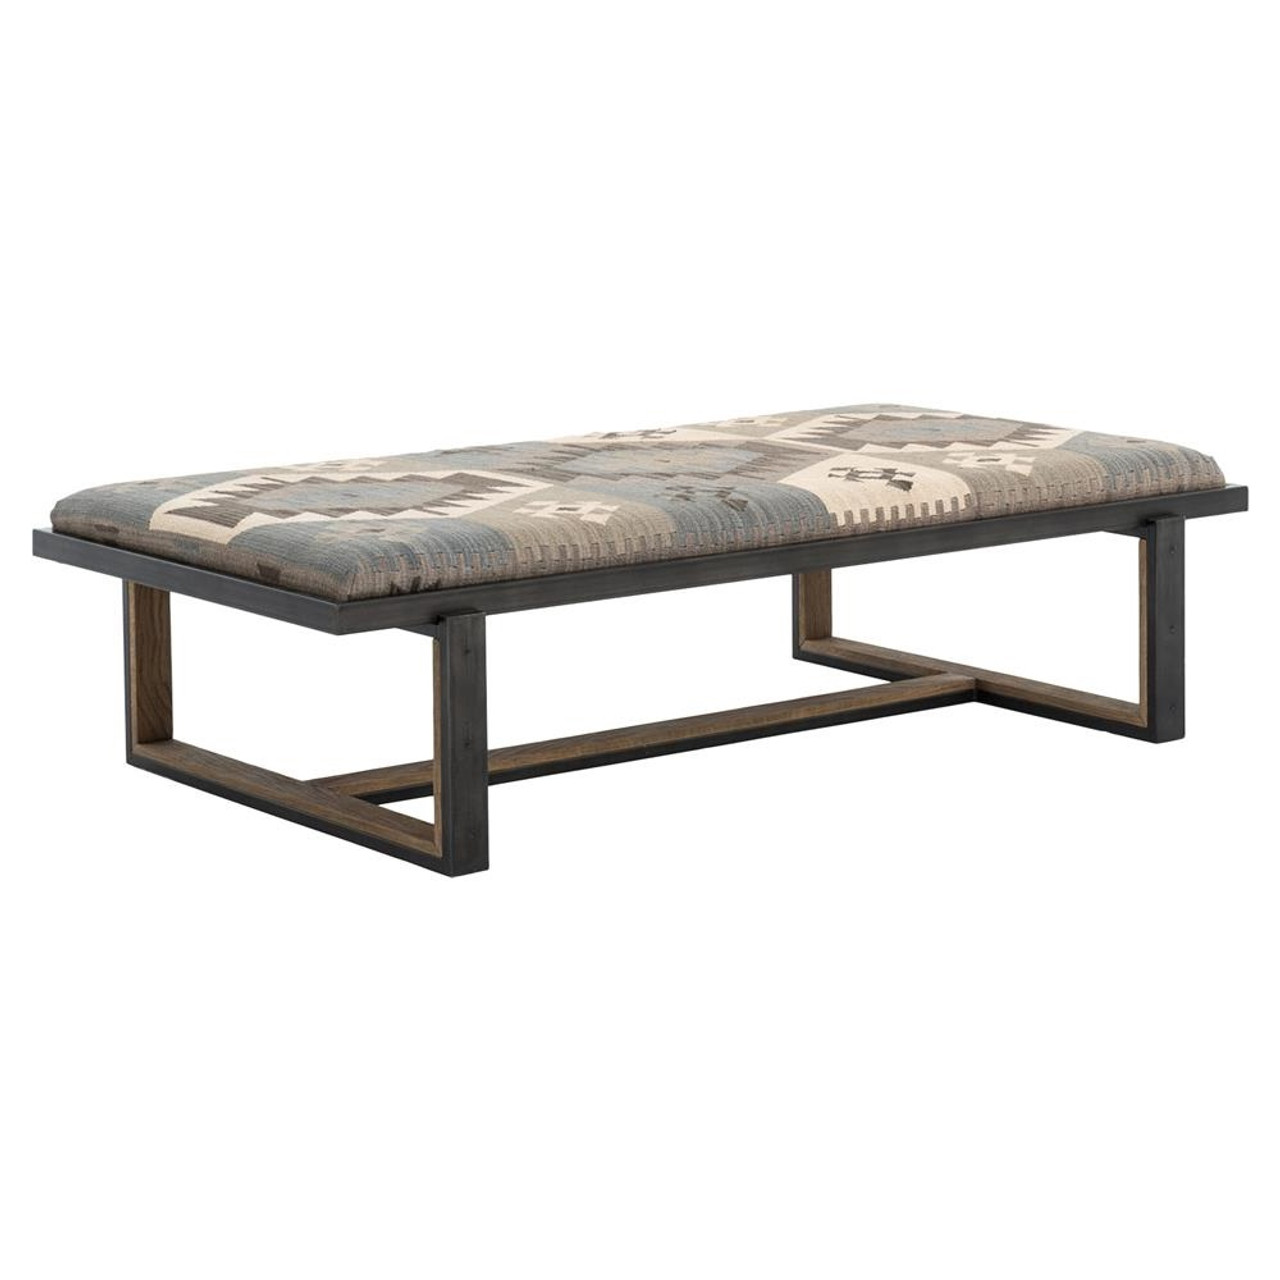 Merveilleux Eclectic Iron And Kilim Upholstered Coffee Table Ottoman